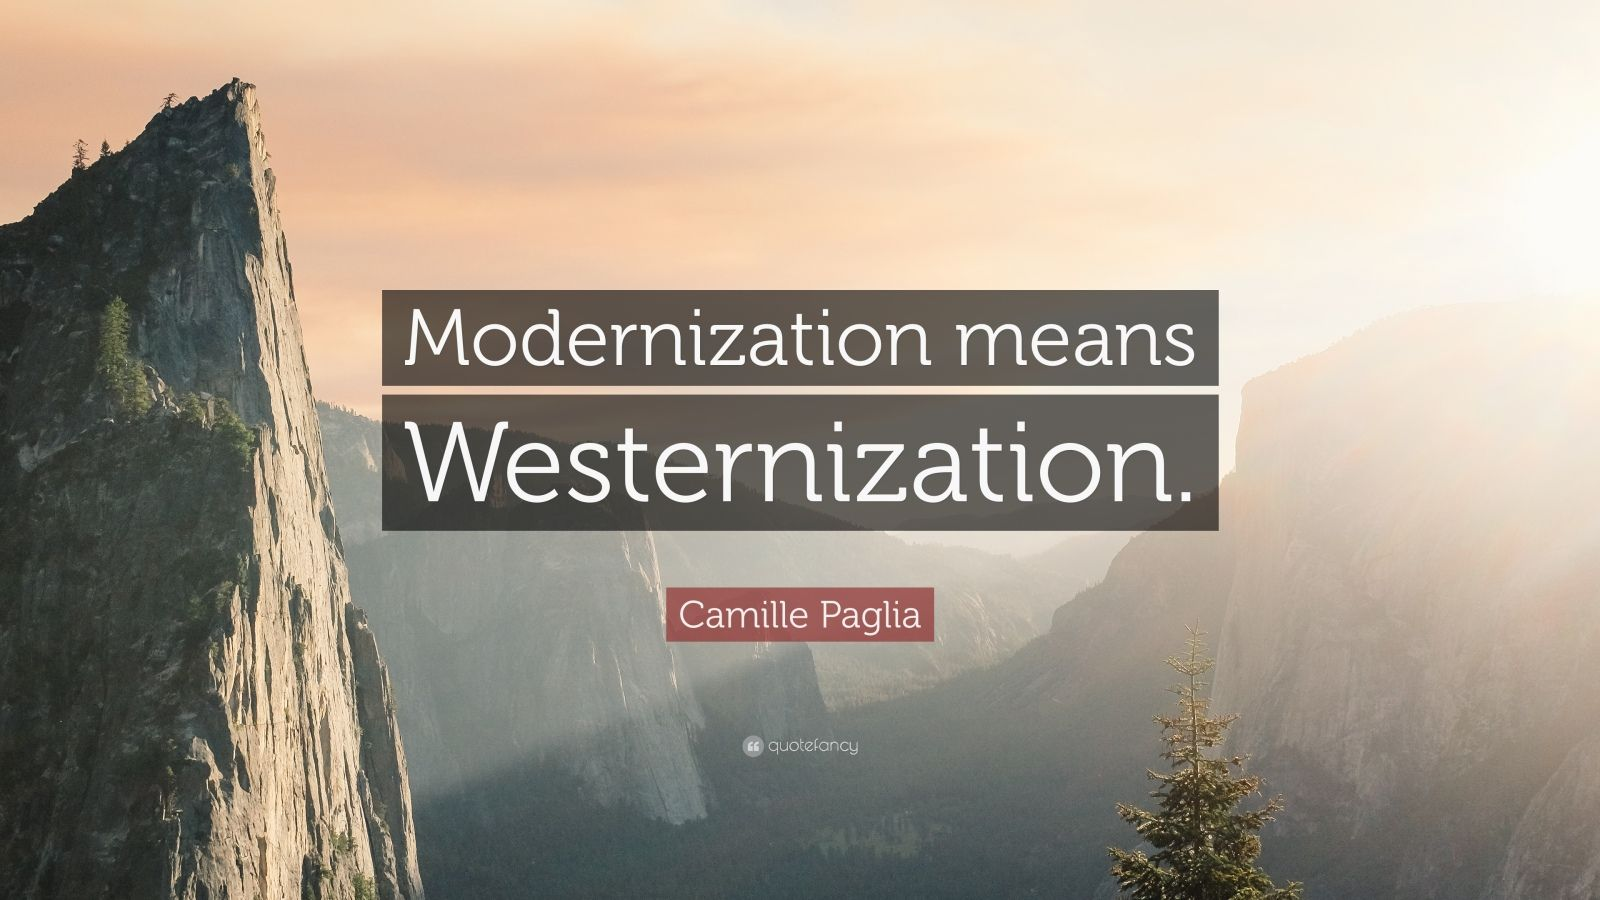 modernization or westernization Westernization has been part of the modernization process, which in no sense can be regarded as harmful on the other hand, it is important to examine the west's impact since if we are not careful, it could have a negative influence on our society, and lead to the disruption of cultural values and customs.